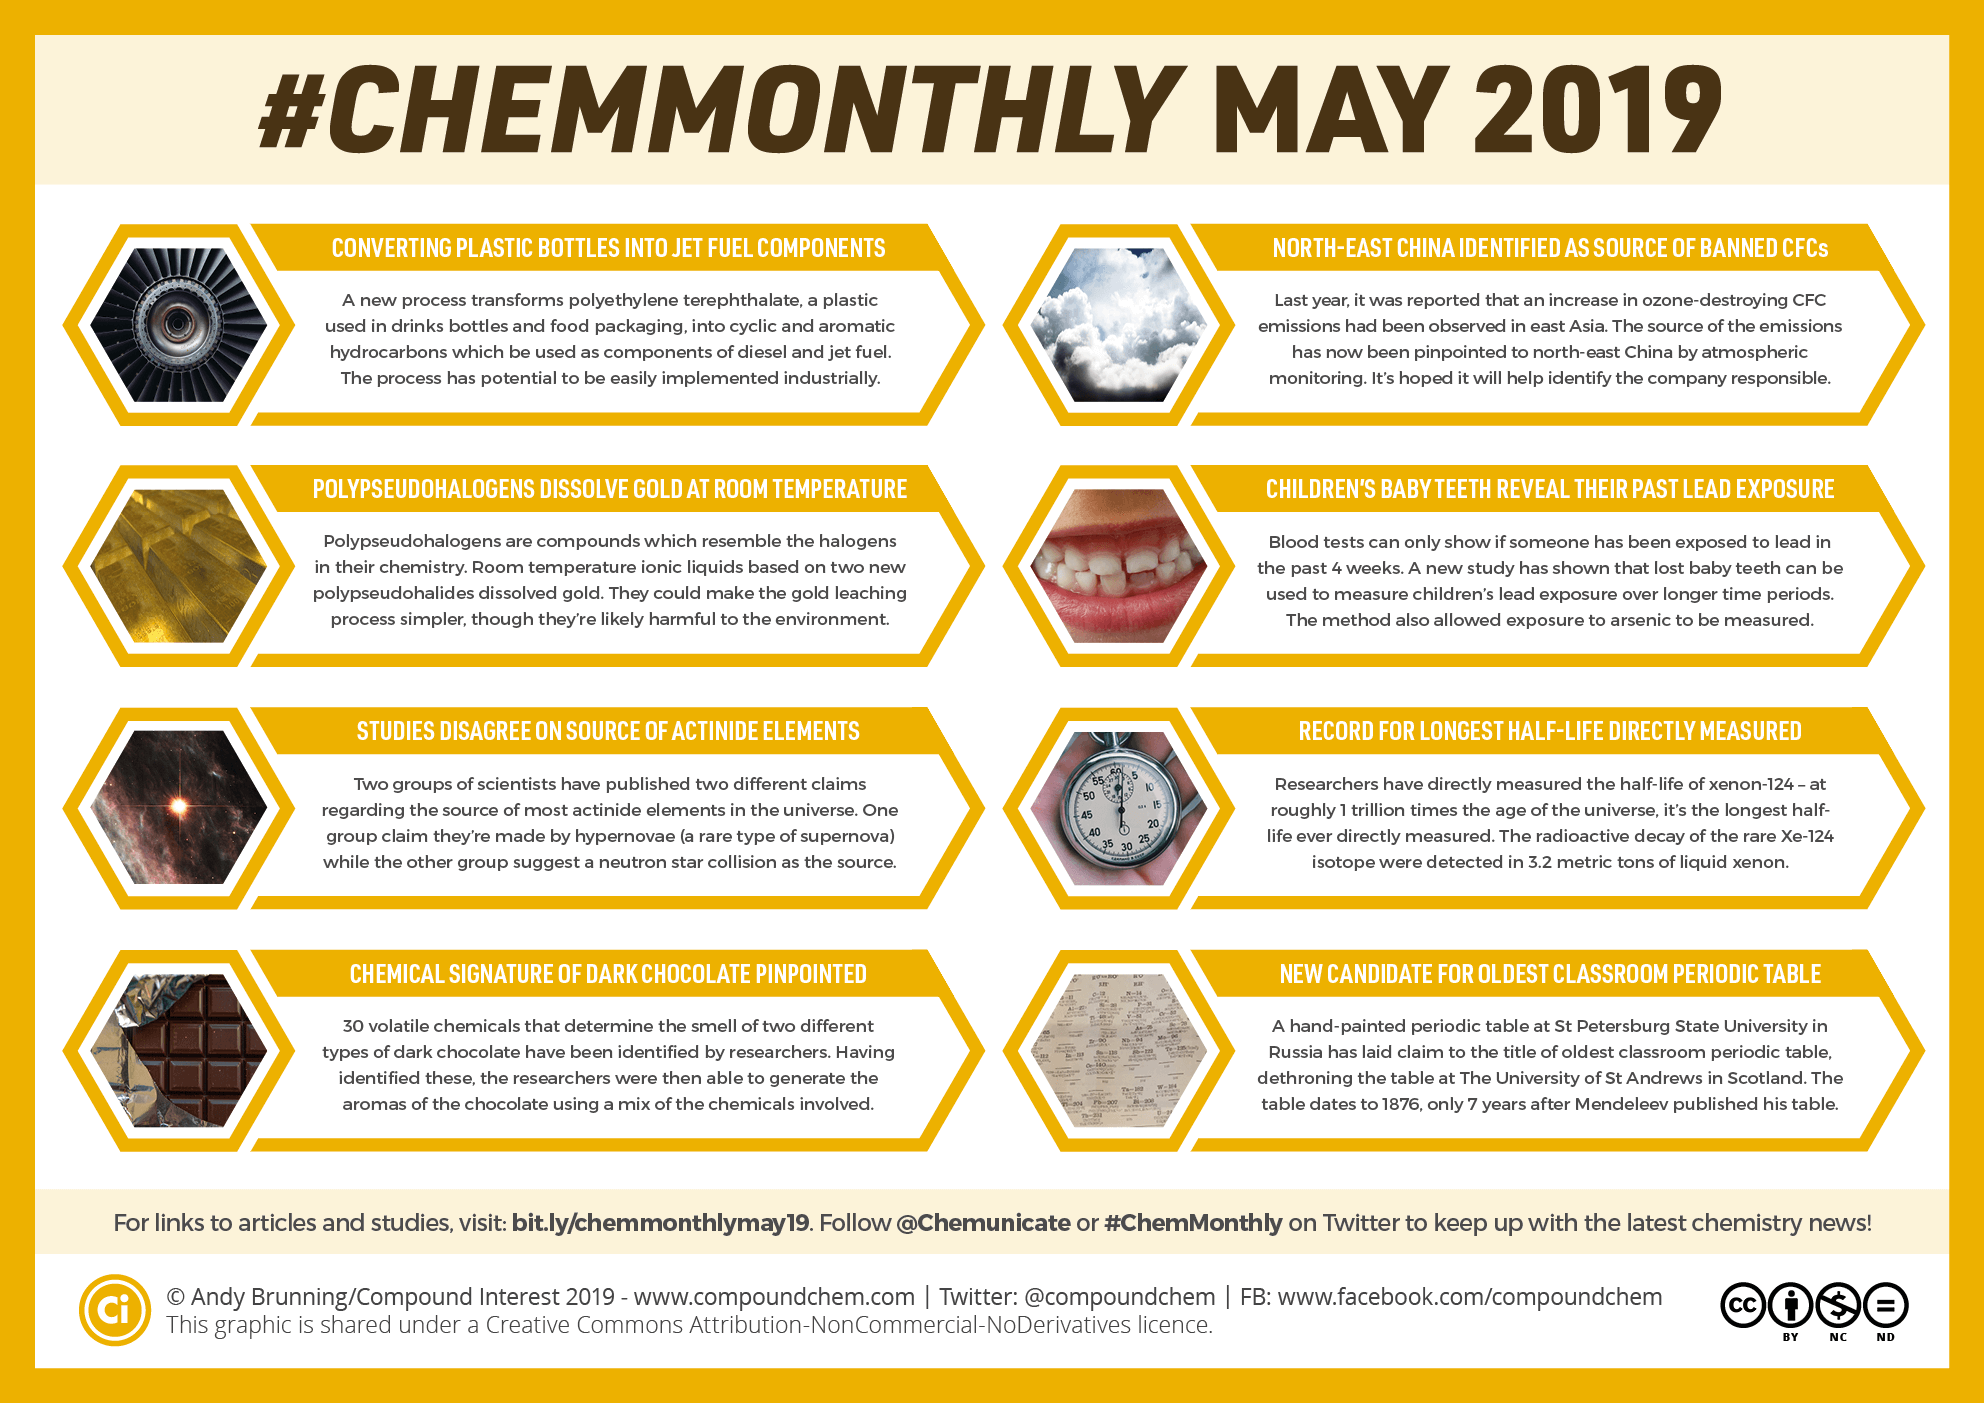 ChemMonthly June 2019: Converting blood types, snail-inspired glue